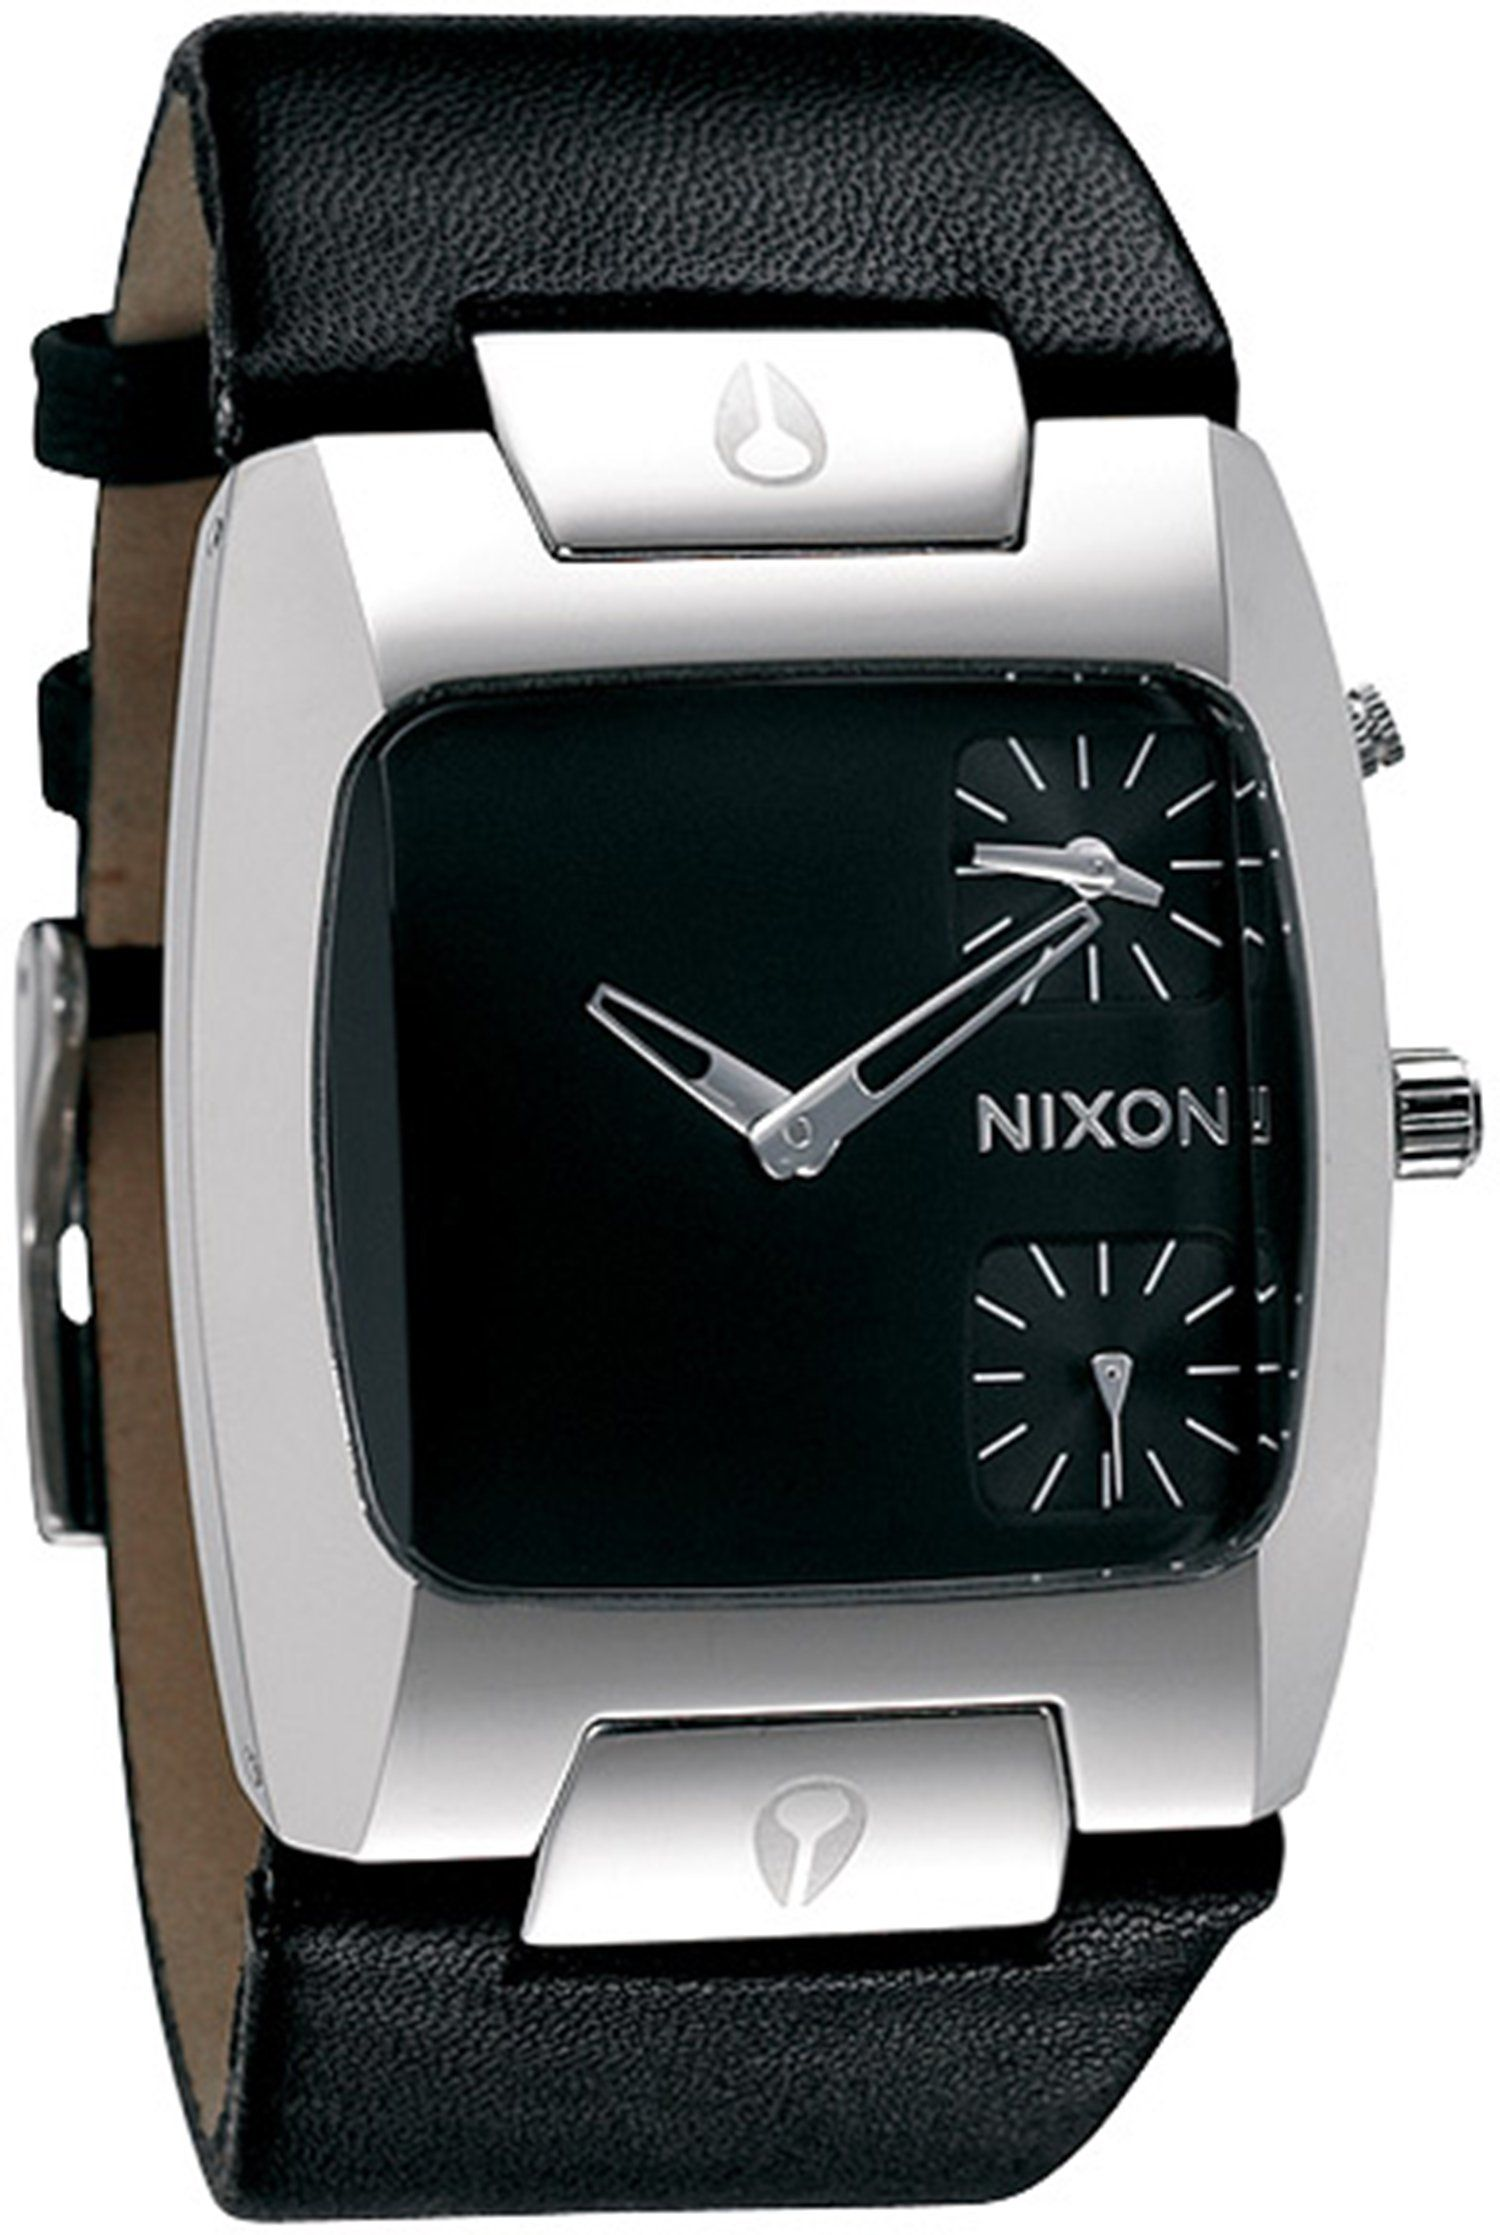 2ee0072311b Nixon The Banks Men s Quartz Watch A086000. Nixon. A086000. The ...